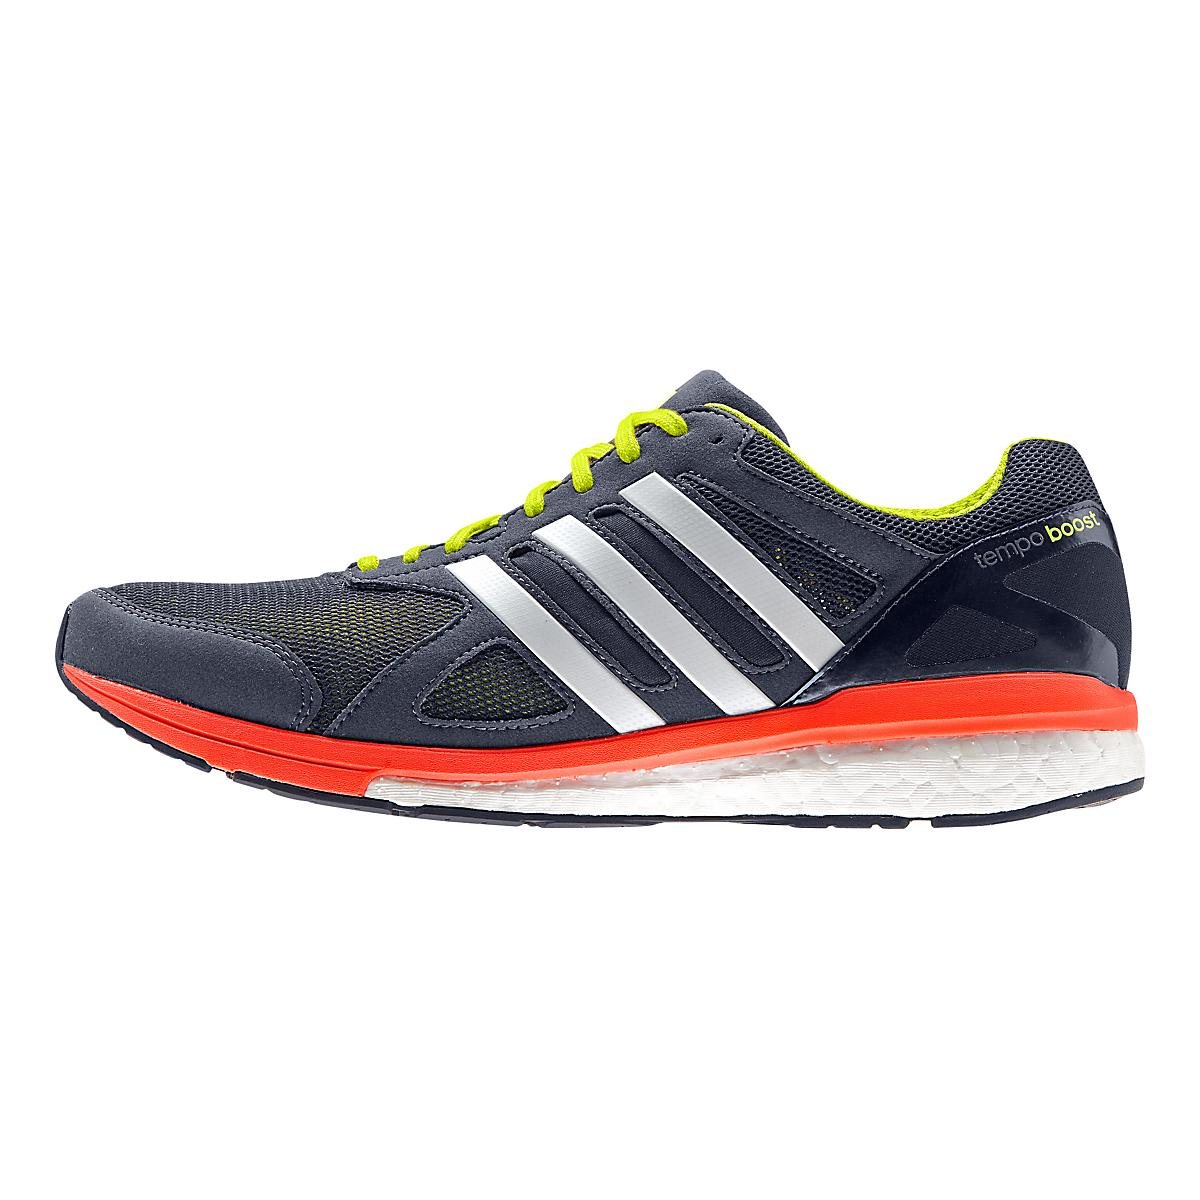 Mens adidas Adizero Tempo 7 Boost Running Shoe at Road Runner Sports f67dc0eaf